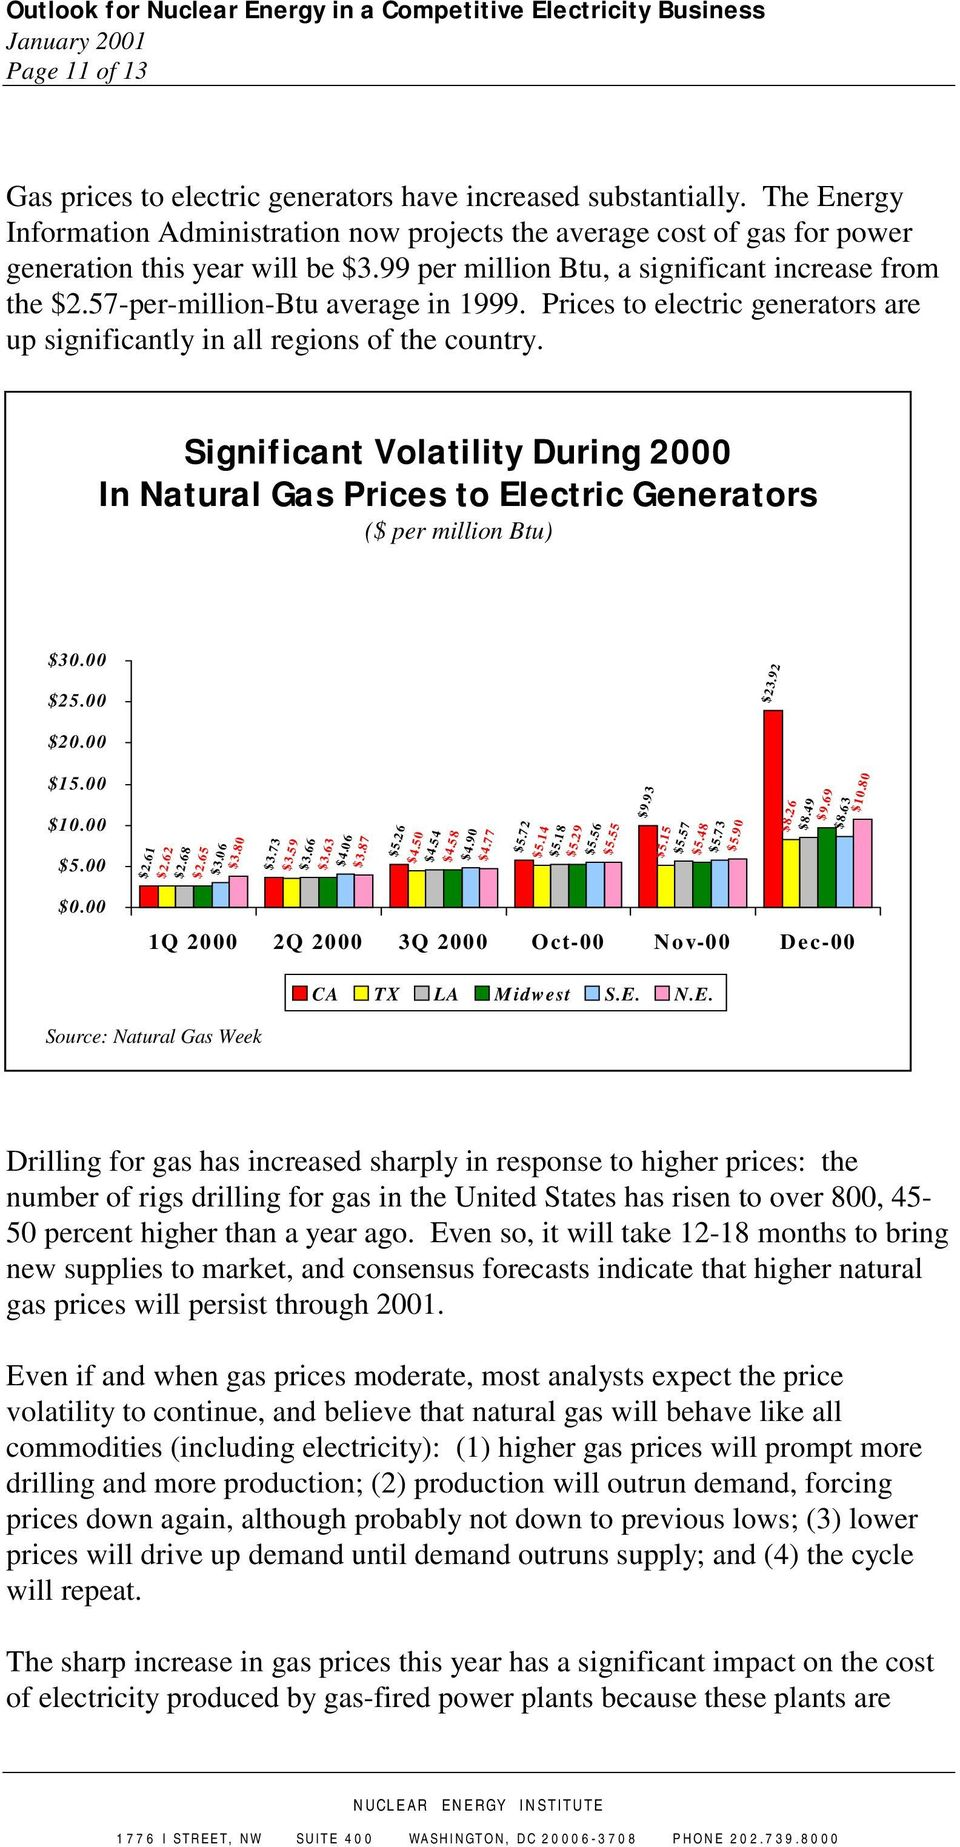 Significant Volatility During 2000 In Natural Gas Prices to Electric Generators ($ per million Btu) $30.00 $25.00 $23.92 $20.00 $15.00 $10.00 $5.00 $2.61 $2.62 $2.68 $2.65 $3.06 $3.80 $3.73 $3.59 $3.